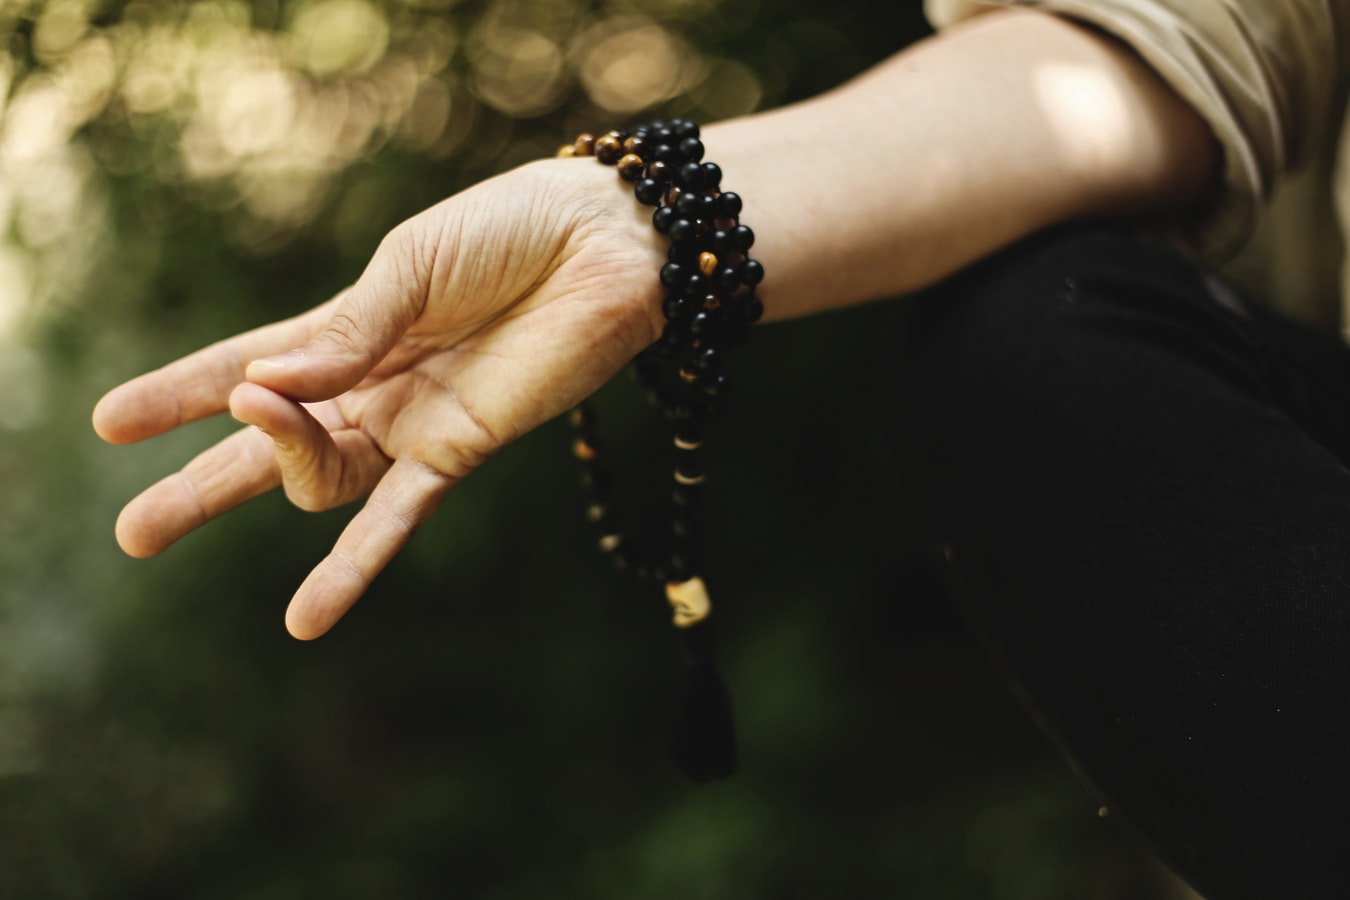 A woman holding a pose perfect for meditation. Meditation can improve well-being for seniors.